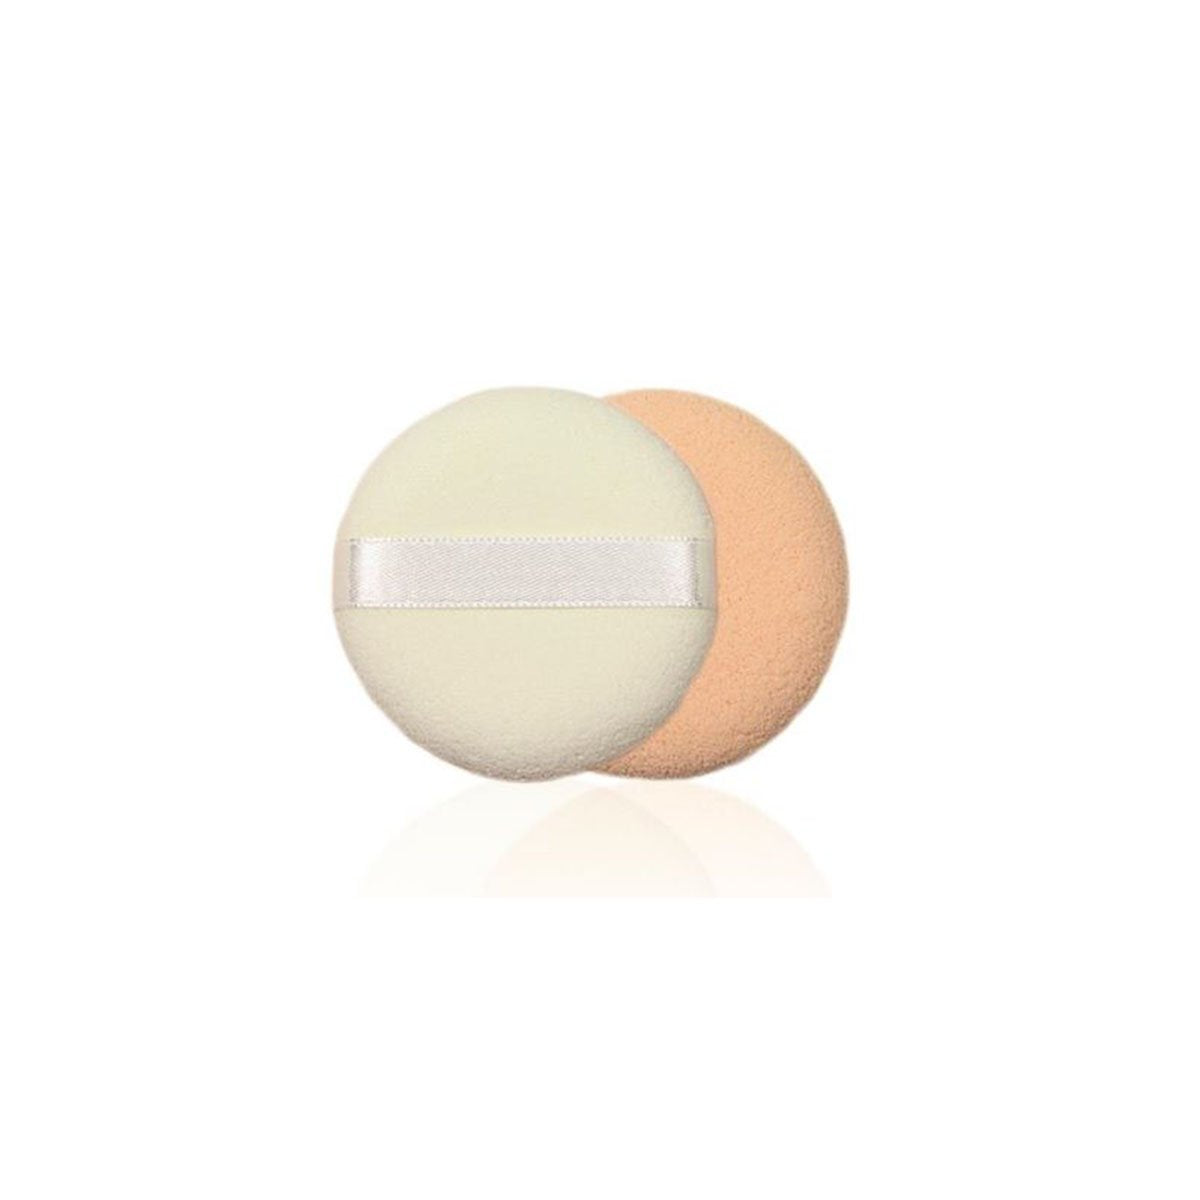 Nascita Do Make-Up Sponge Leo Powder Puff